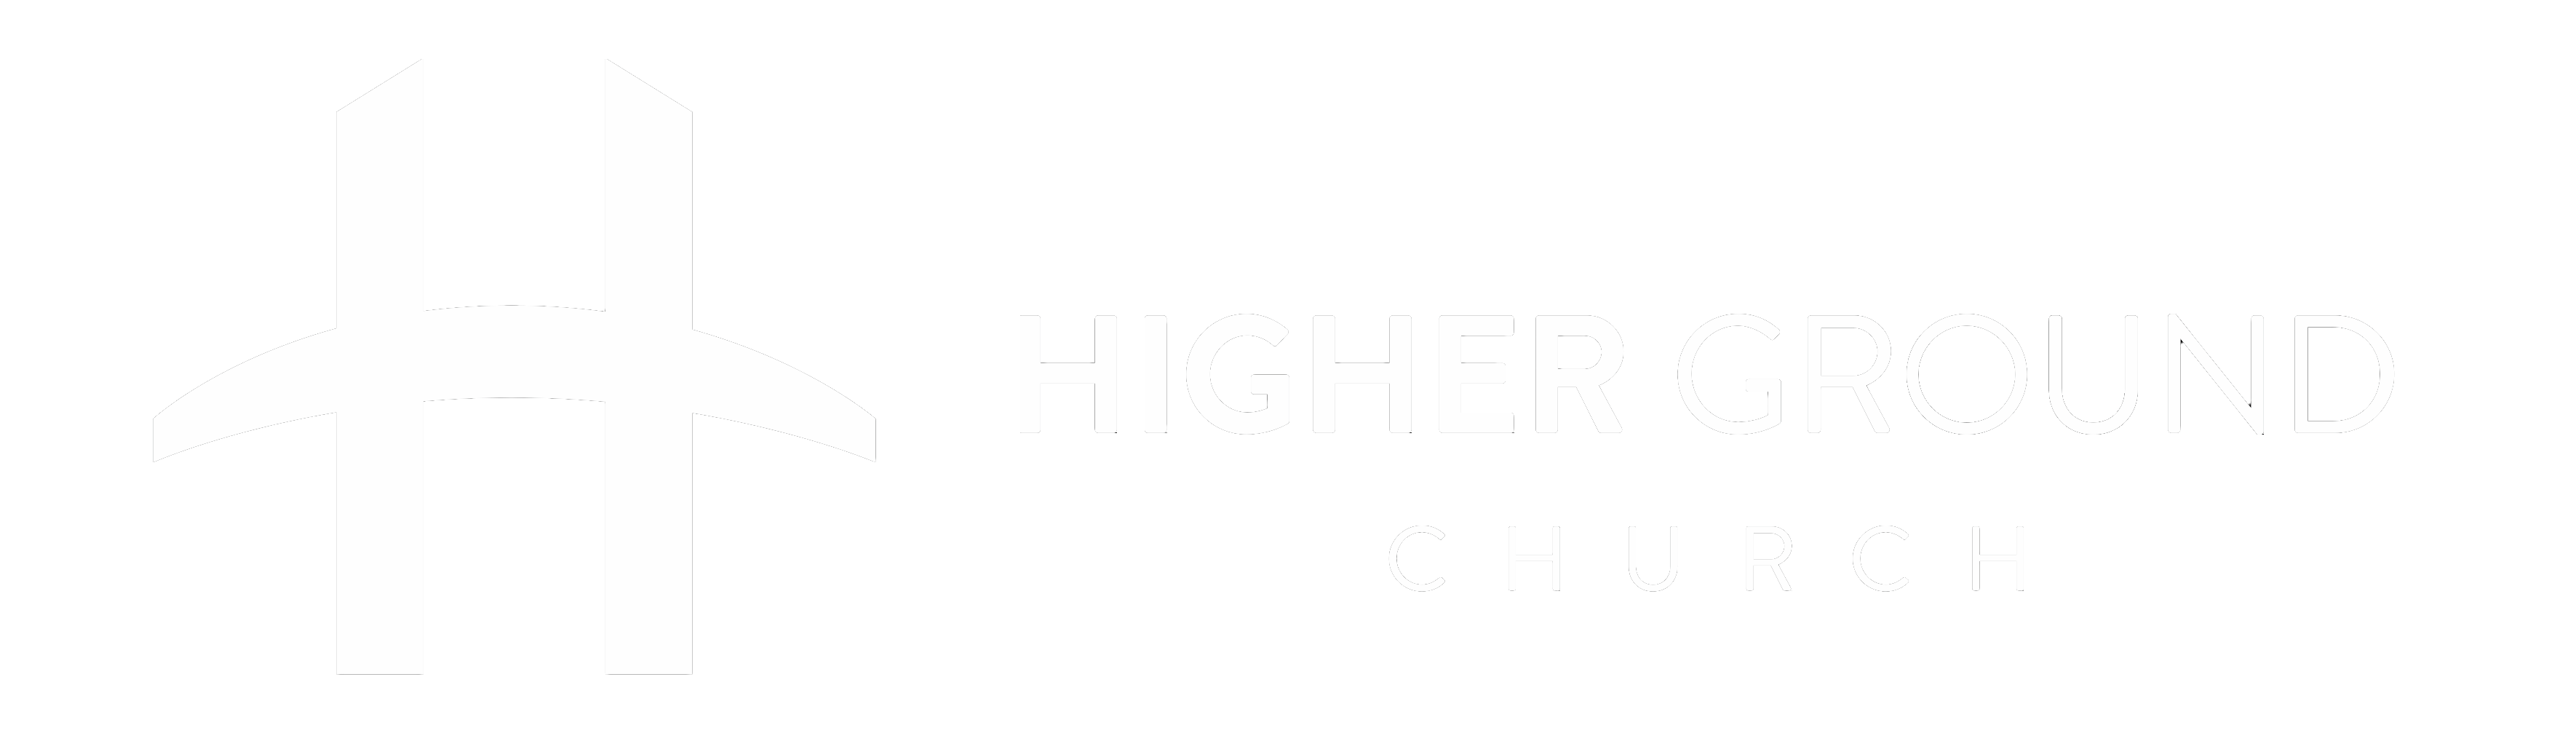 Higher Ground Church in Farmington NM